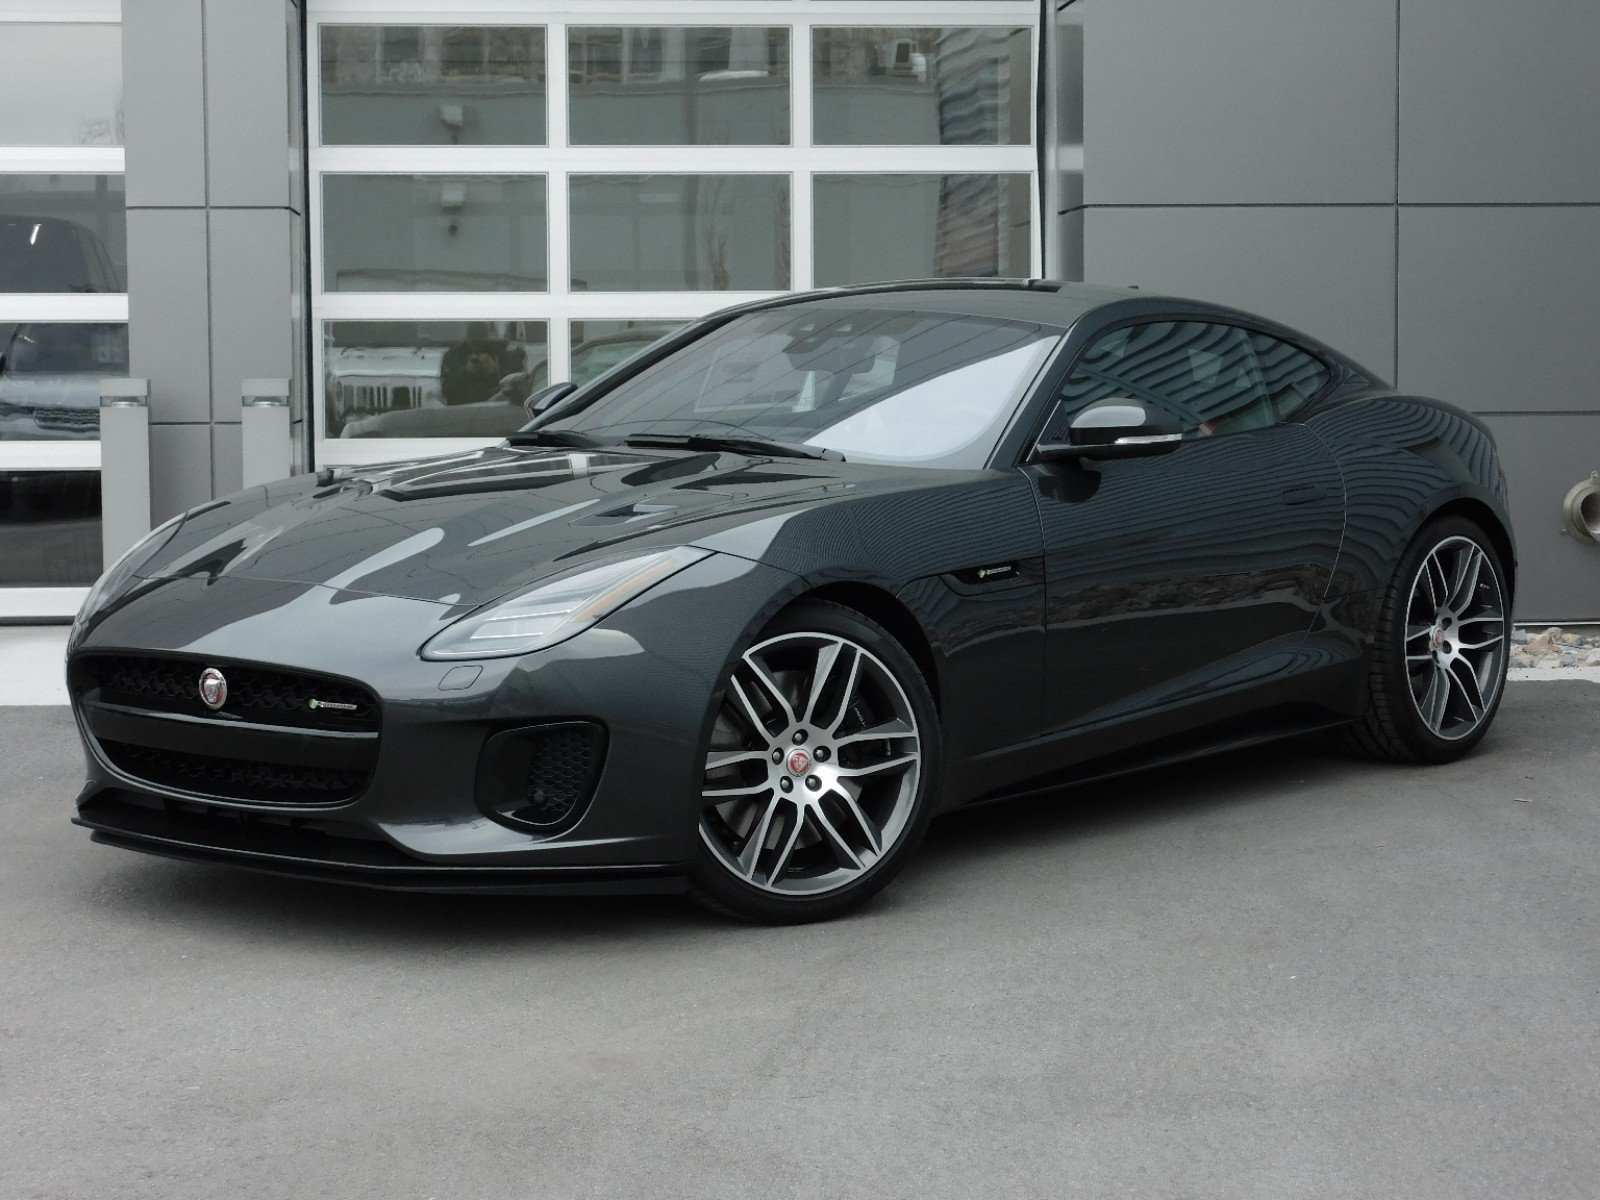 97 New 2020 Jaguar F Type Msrp Rumors